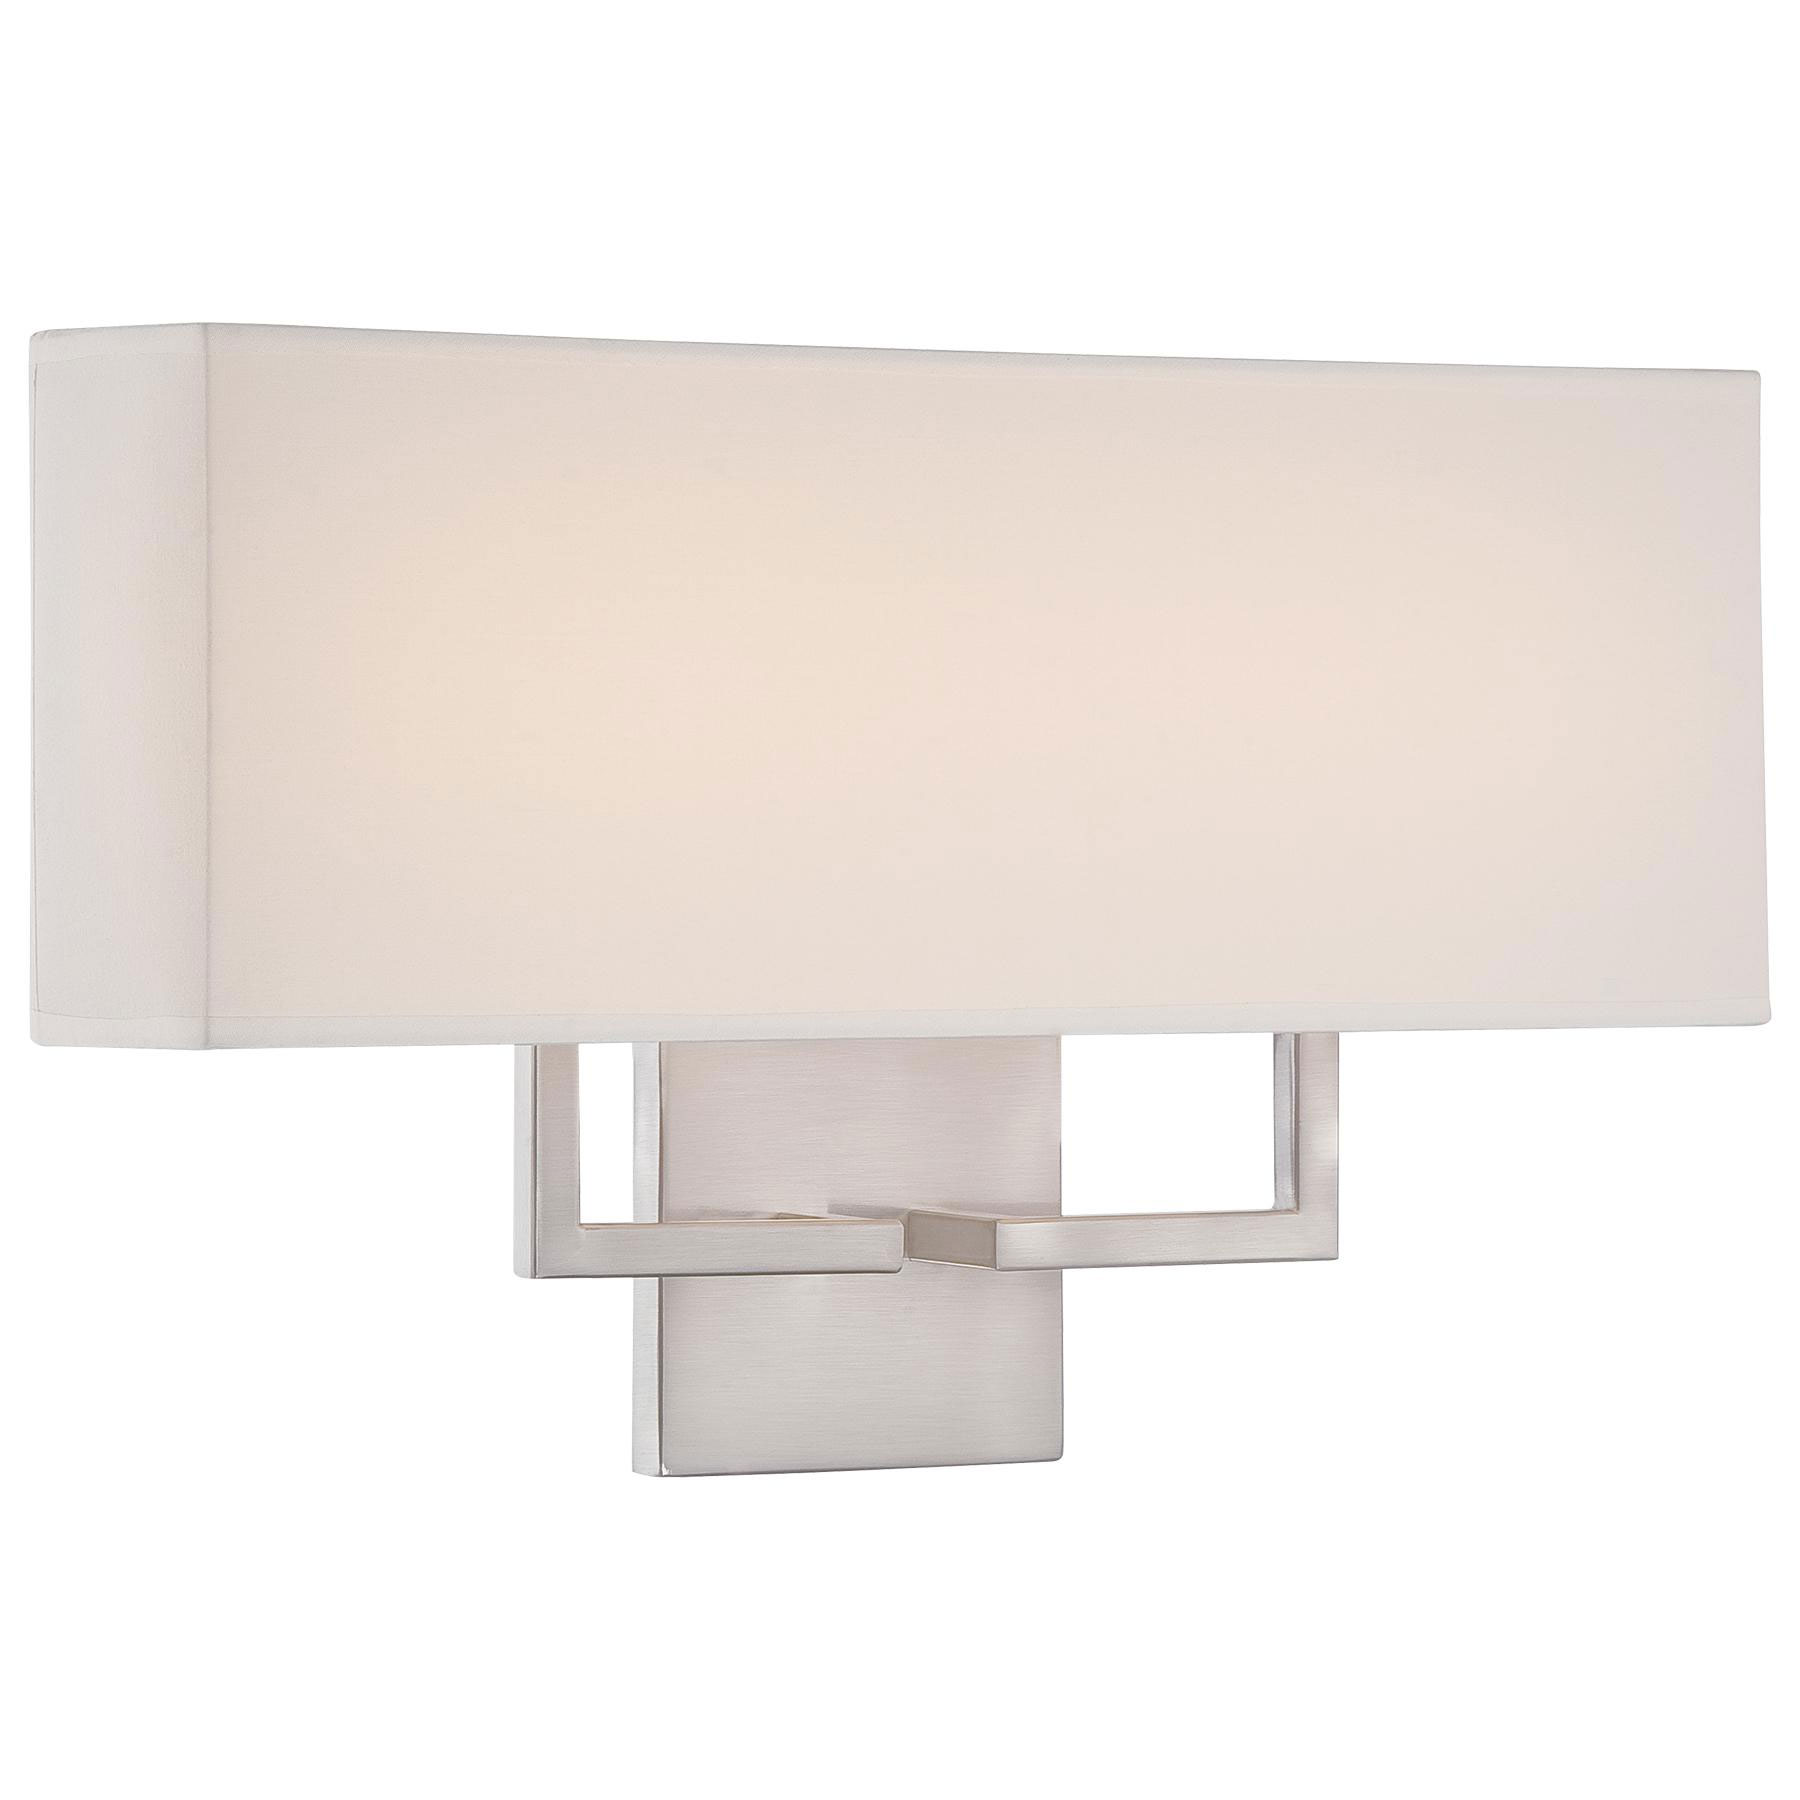 P472 LED Wall Sconce By George Kovacs